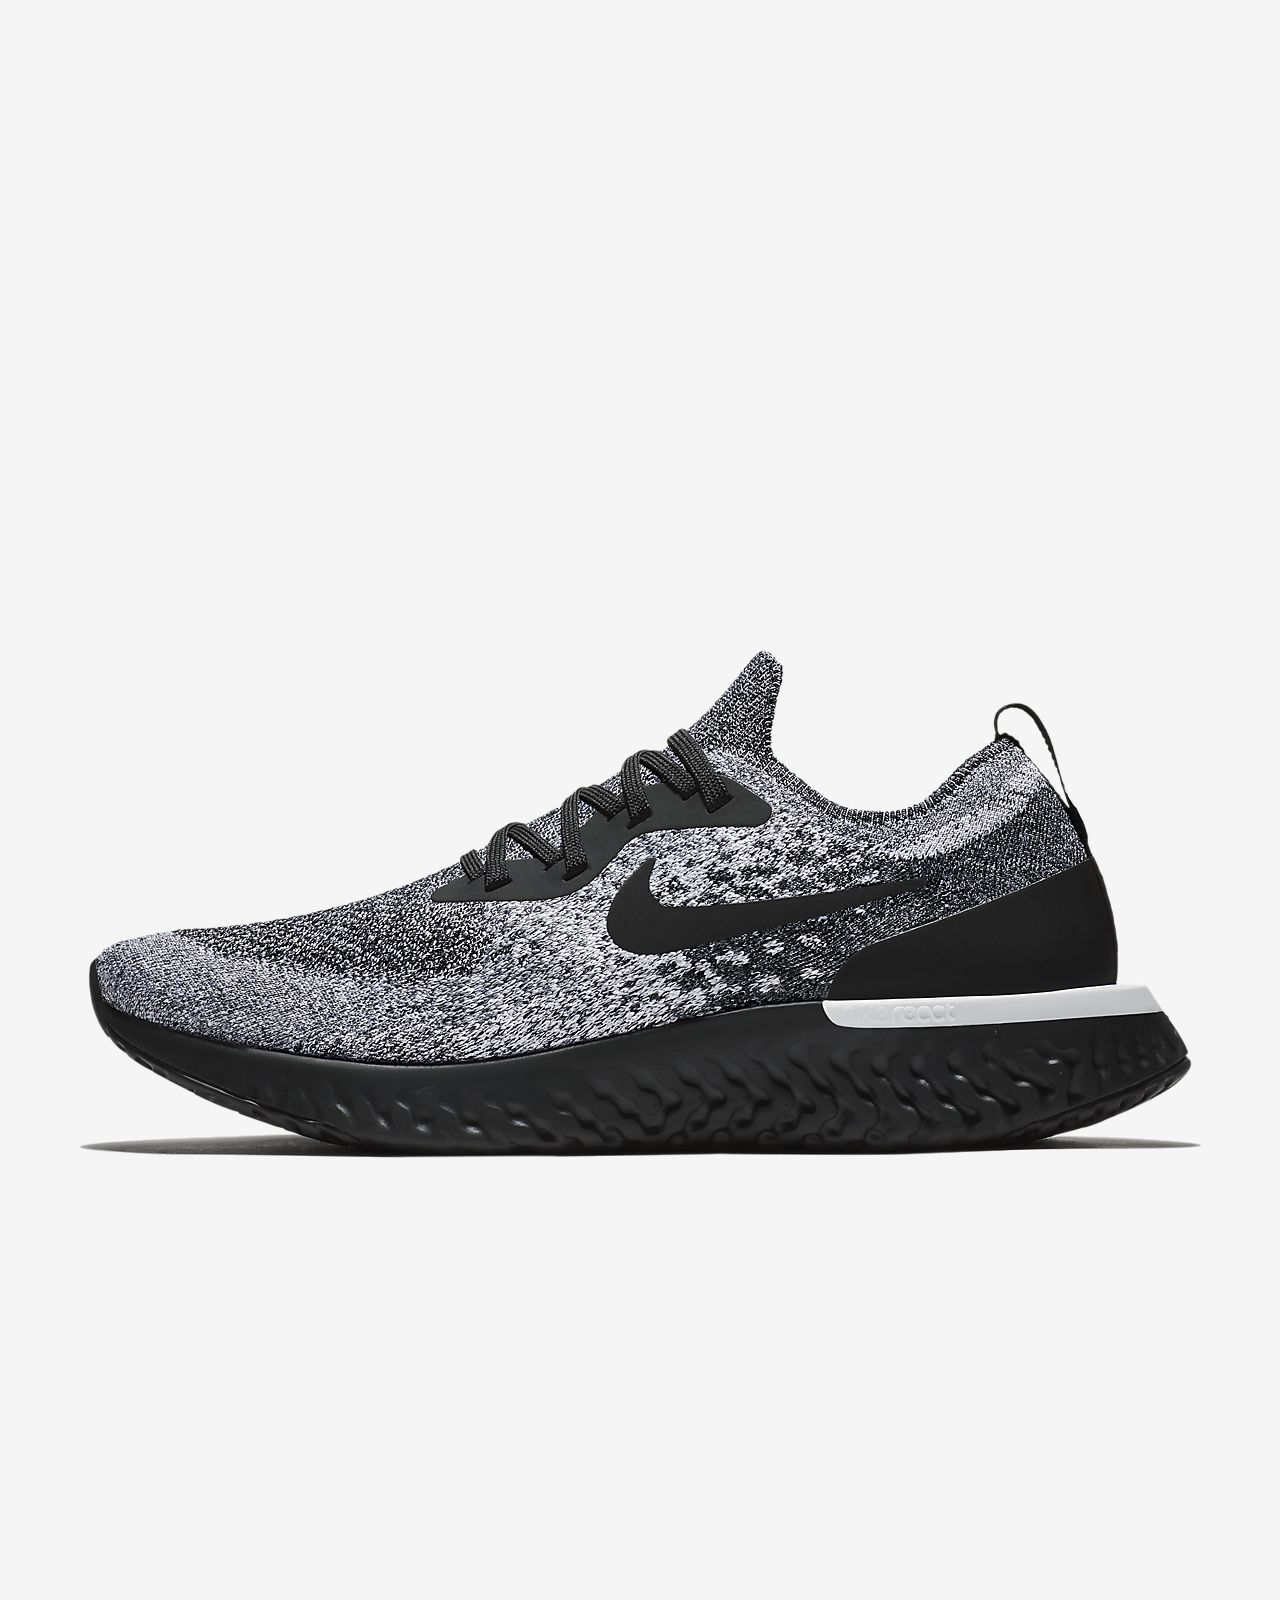 05a9ea80abf7 Nike Epic React Flyknit Men s Running Shoe. Nike.com VN